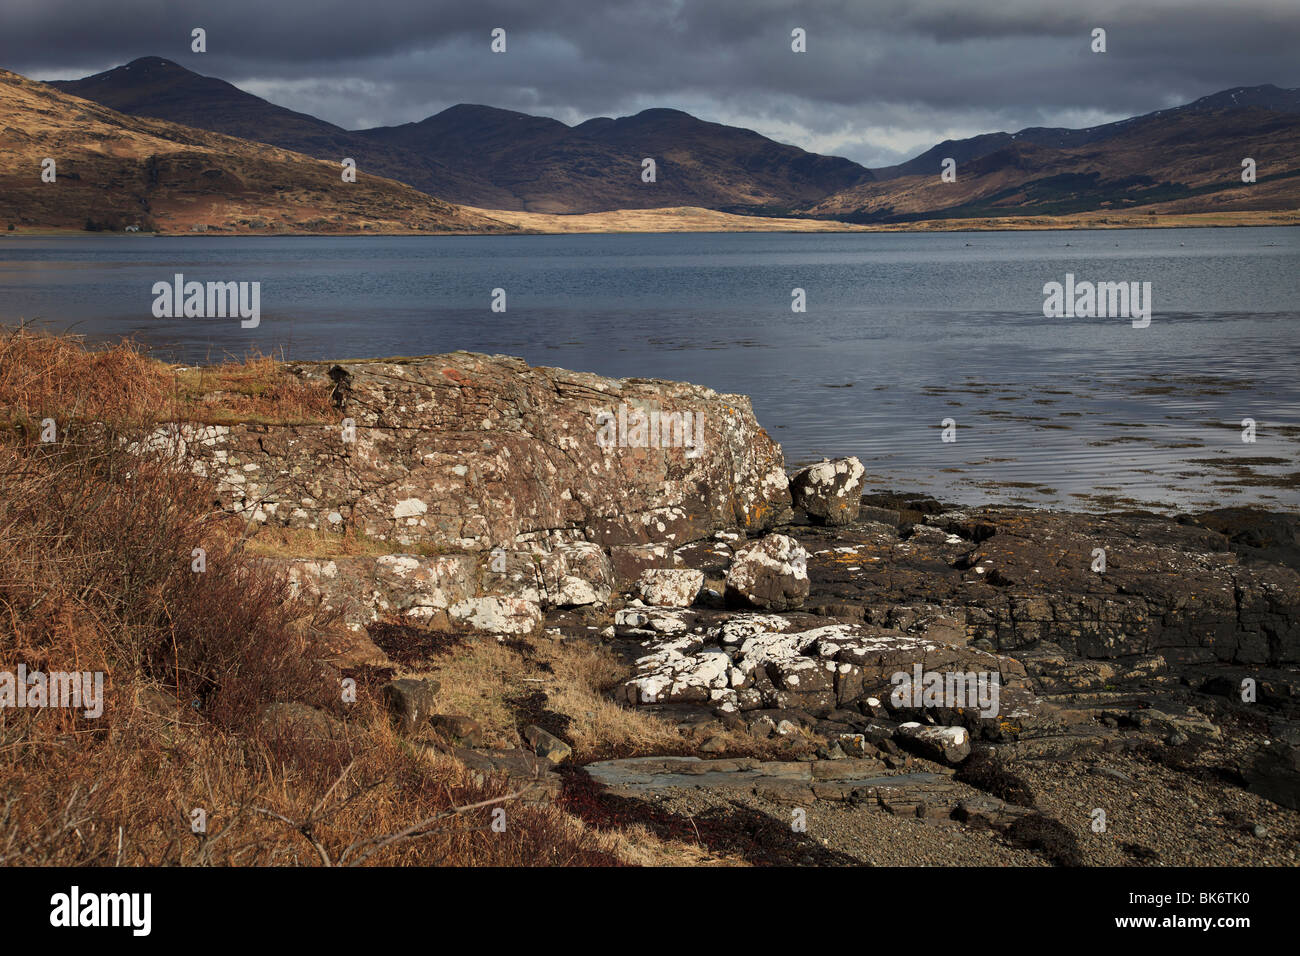 Spring at Loch Beg on the Isle of Mull, Scotland - Stock Image